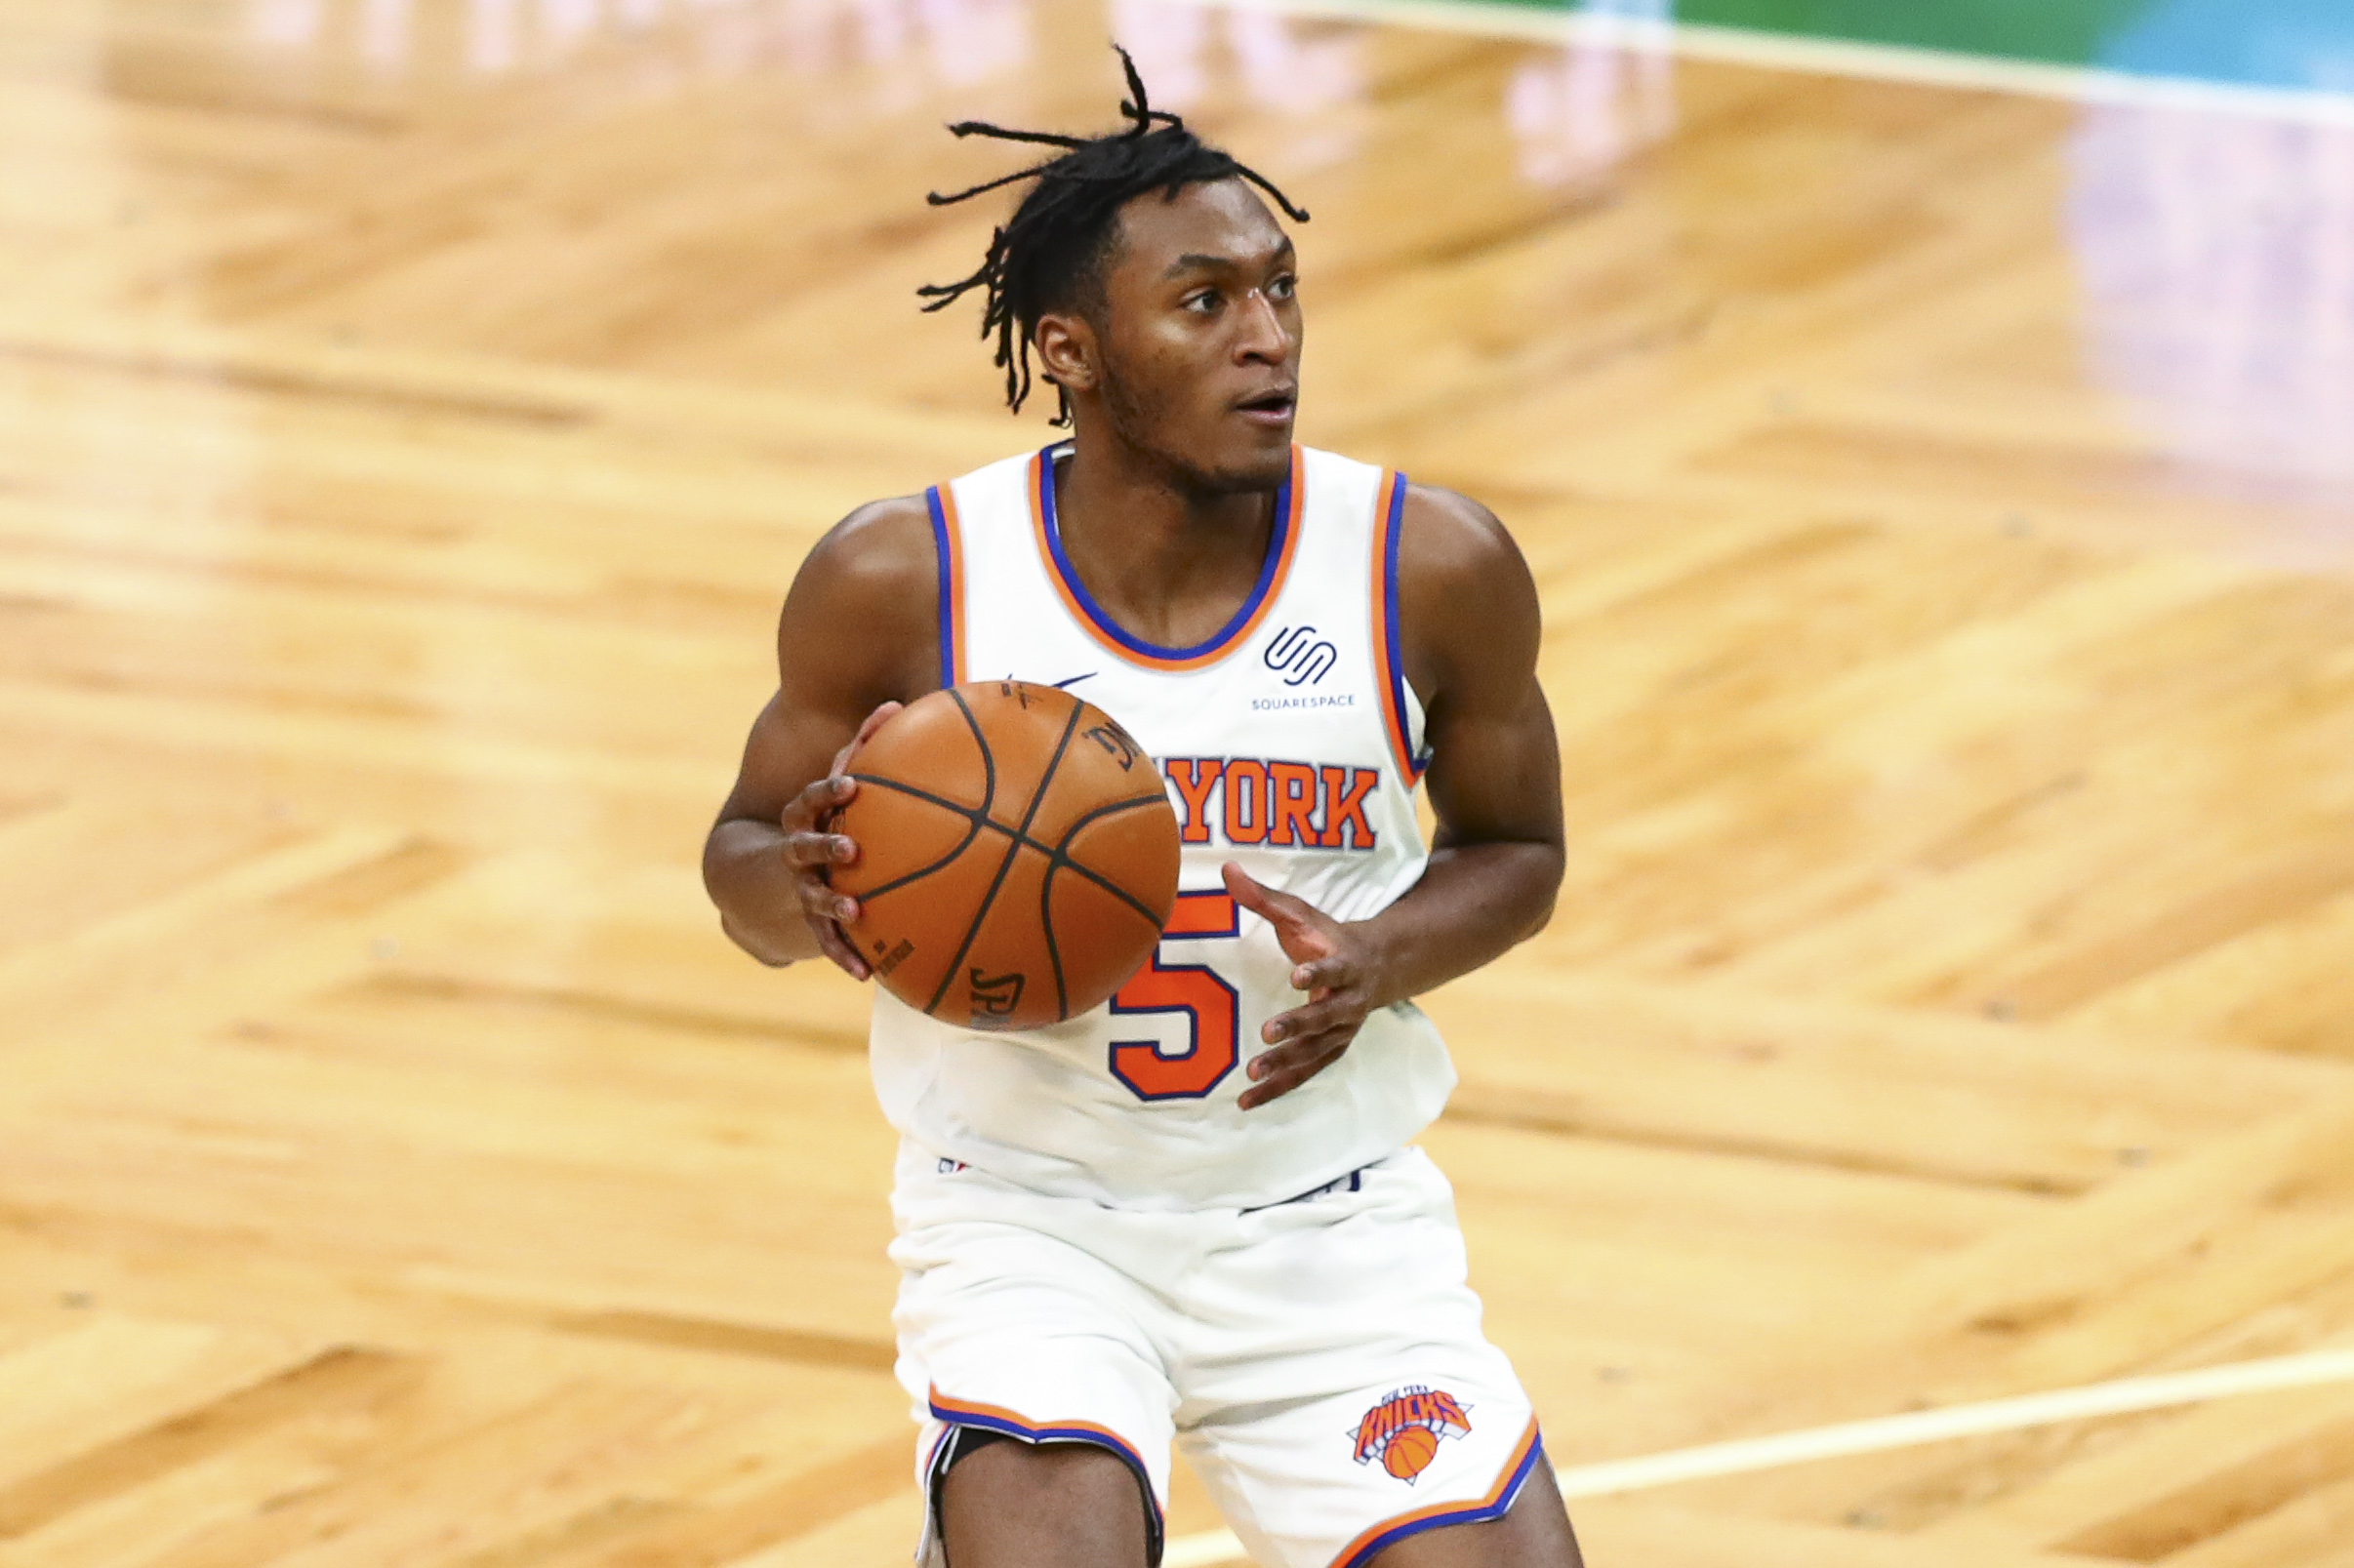 Immanuel Quickley of the New York Knicks looks to pass during a game against the Boston Celtics at TD Garden on January 17, 2021 in Boston, Massachusetts.